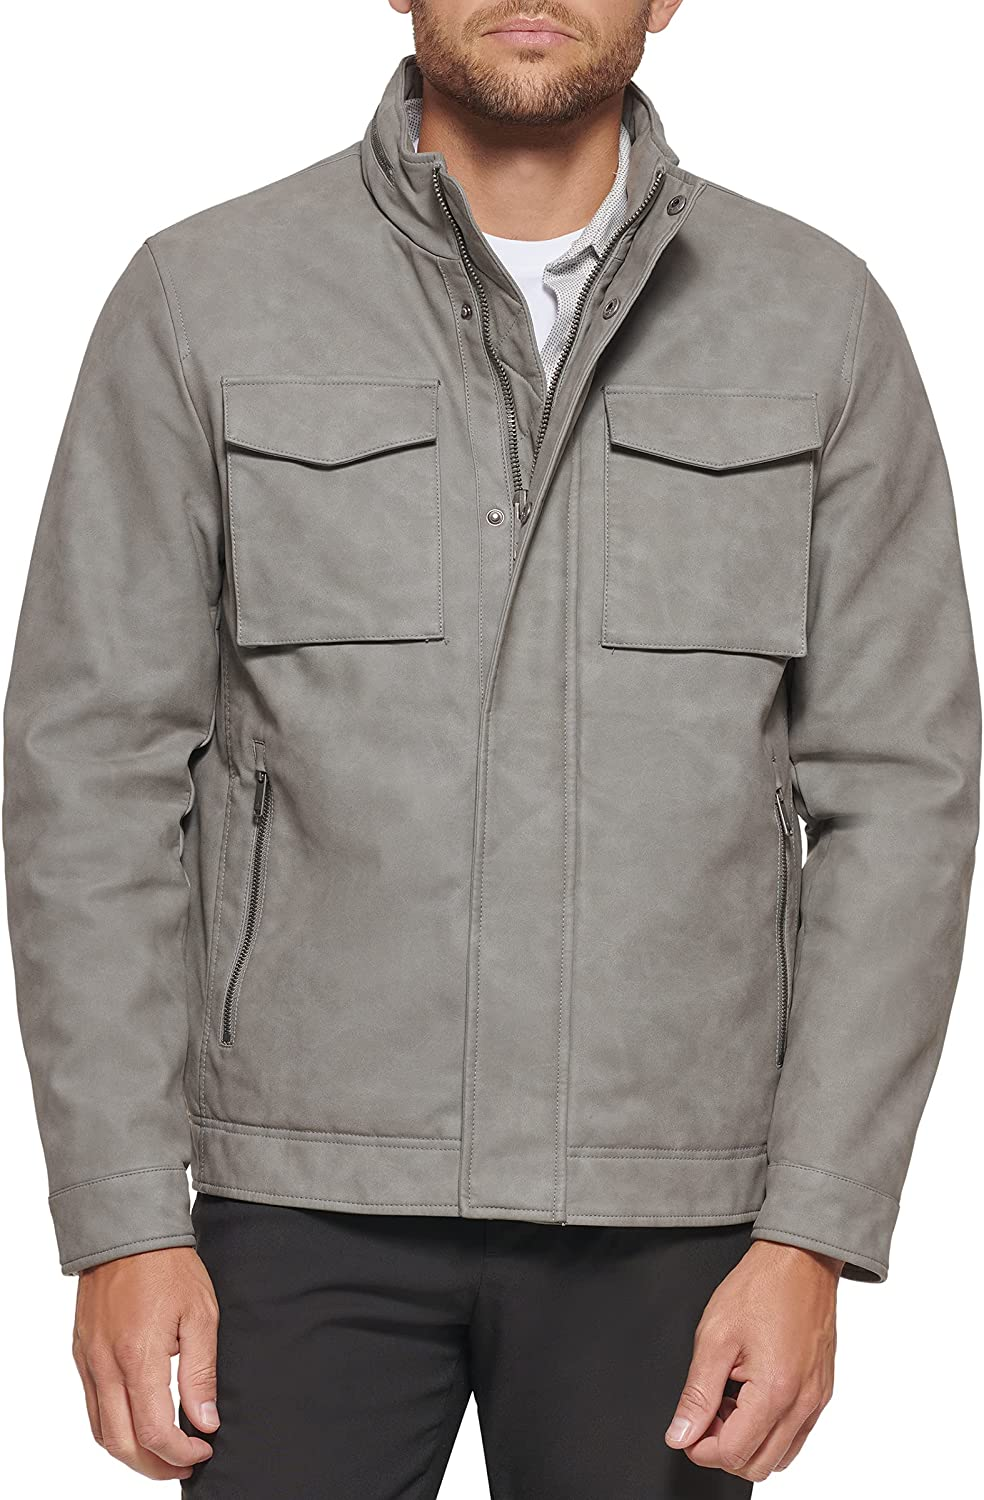 Dockers Men's Faux Leather Military Jacket